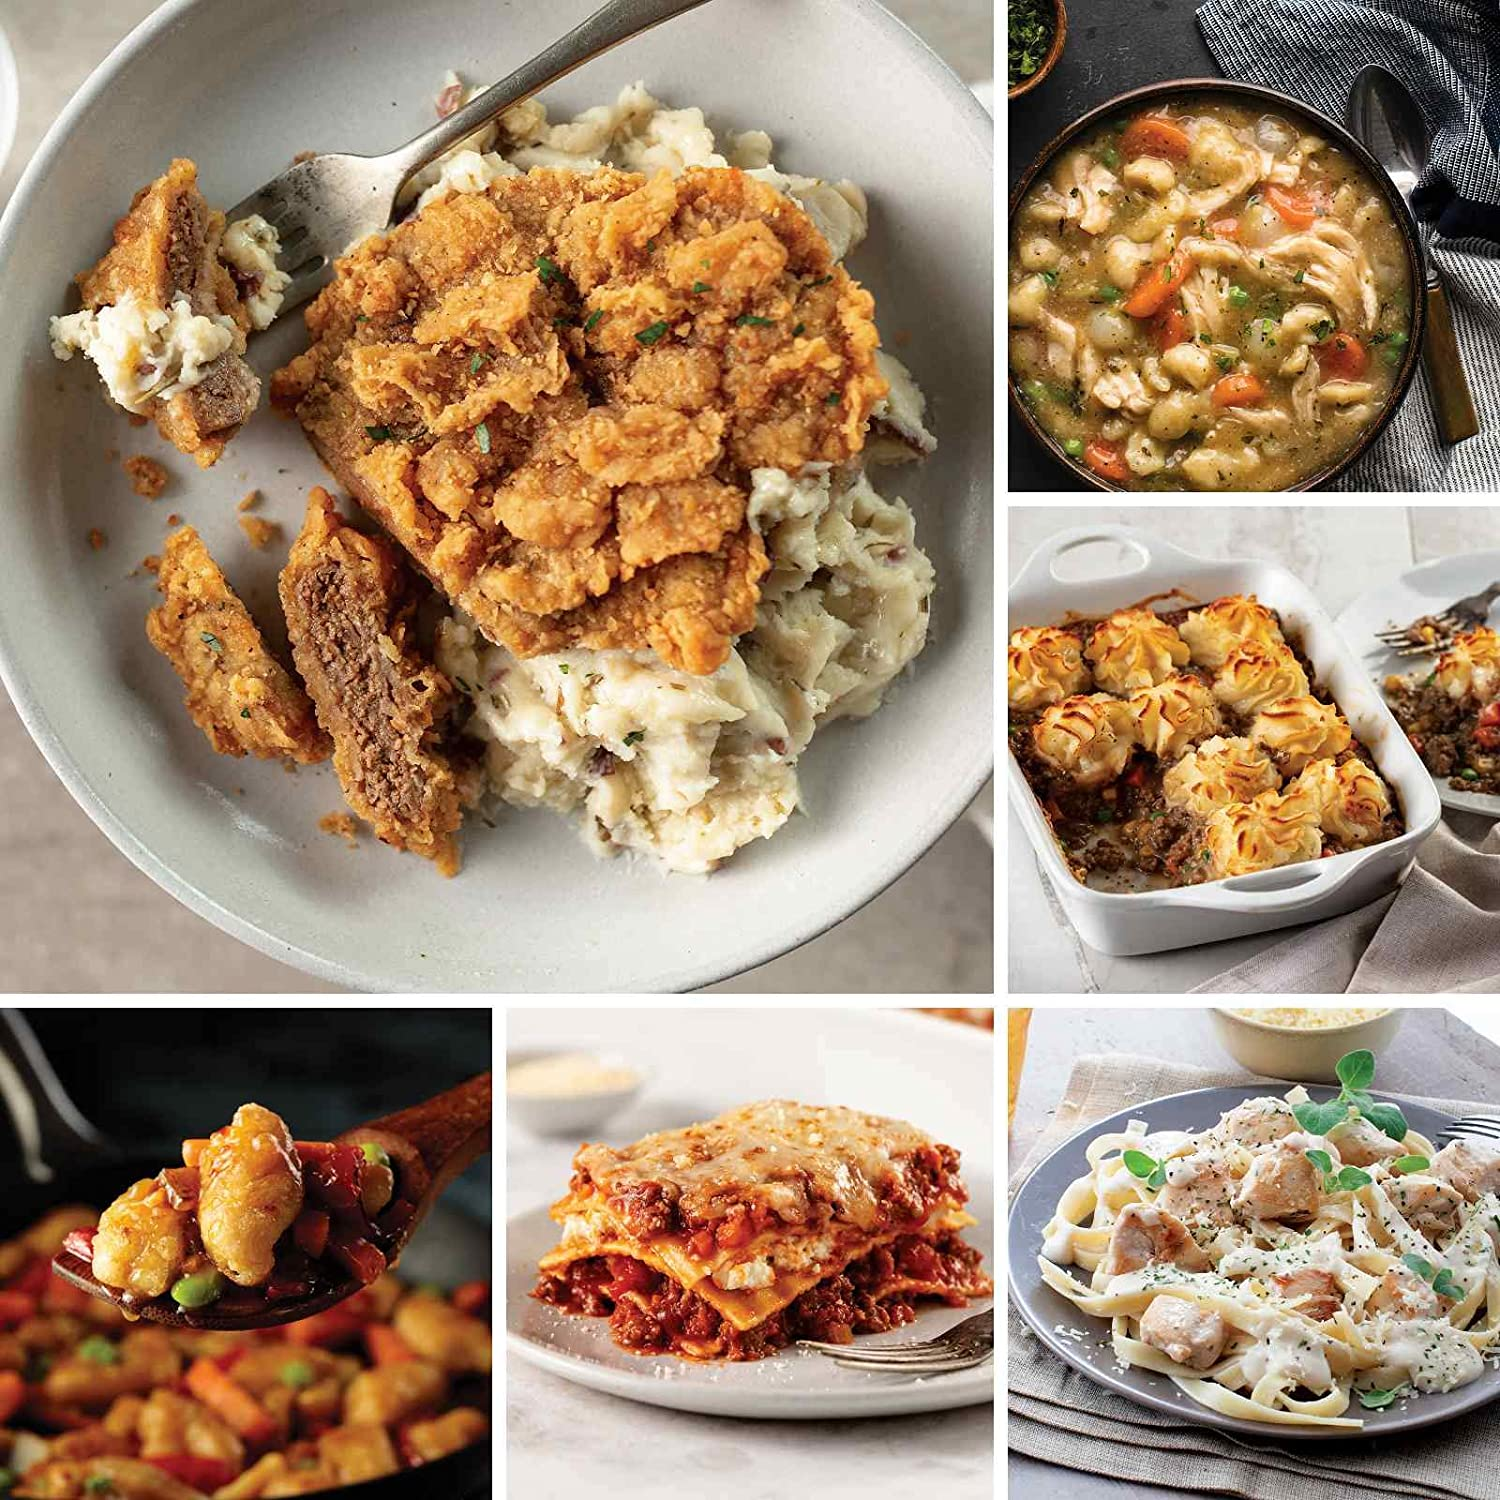 A Gift For Busy Families from Omaha Steaks (Filet Mignon Stroganoff, Slow Cooker Meal: Chicken and Dumplings, Chicken Fettuccine Alfredo, Skillet Meal: Tempura Orange Chicken, and more)